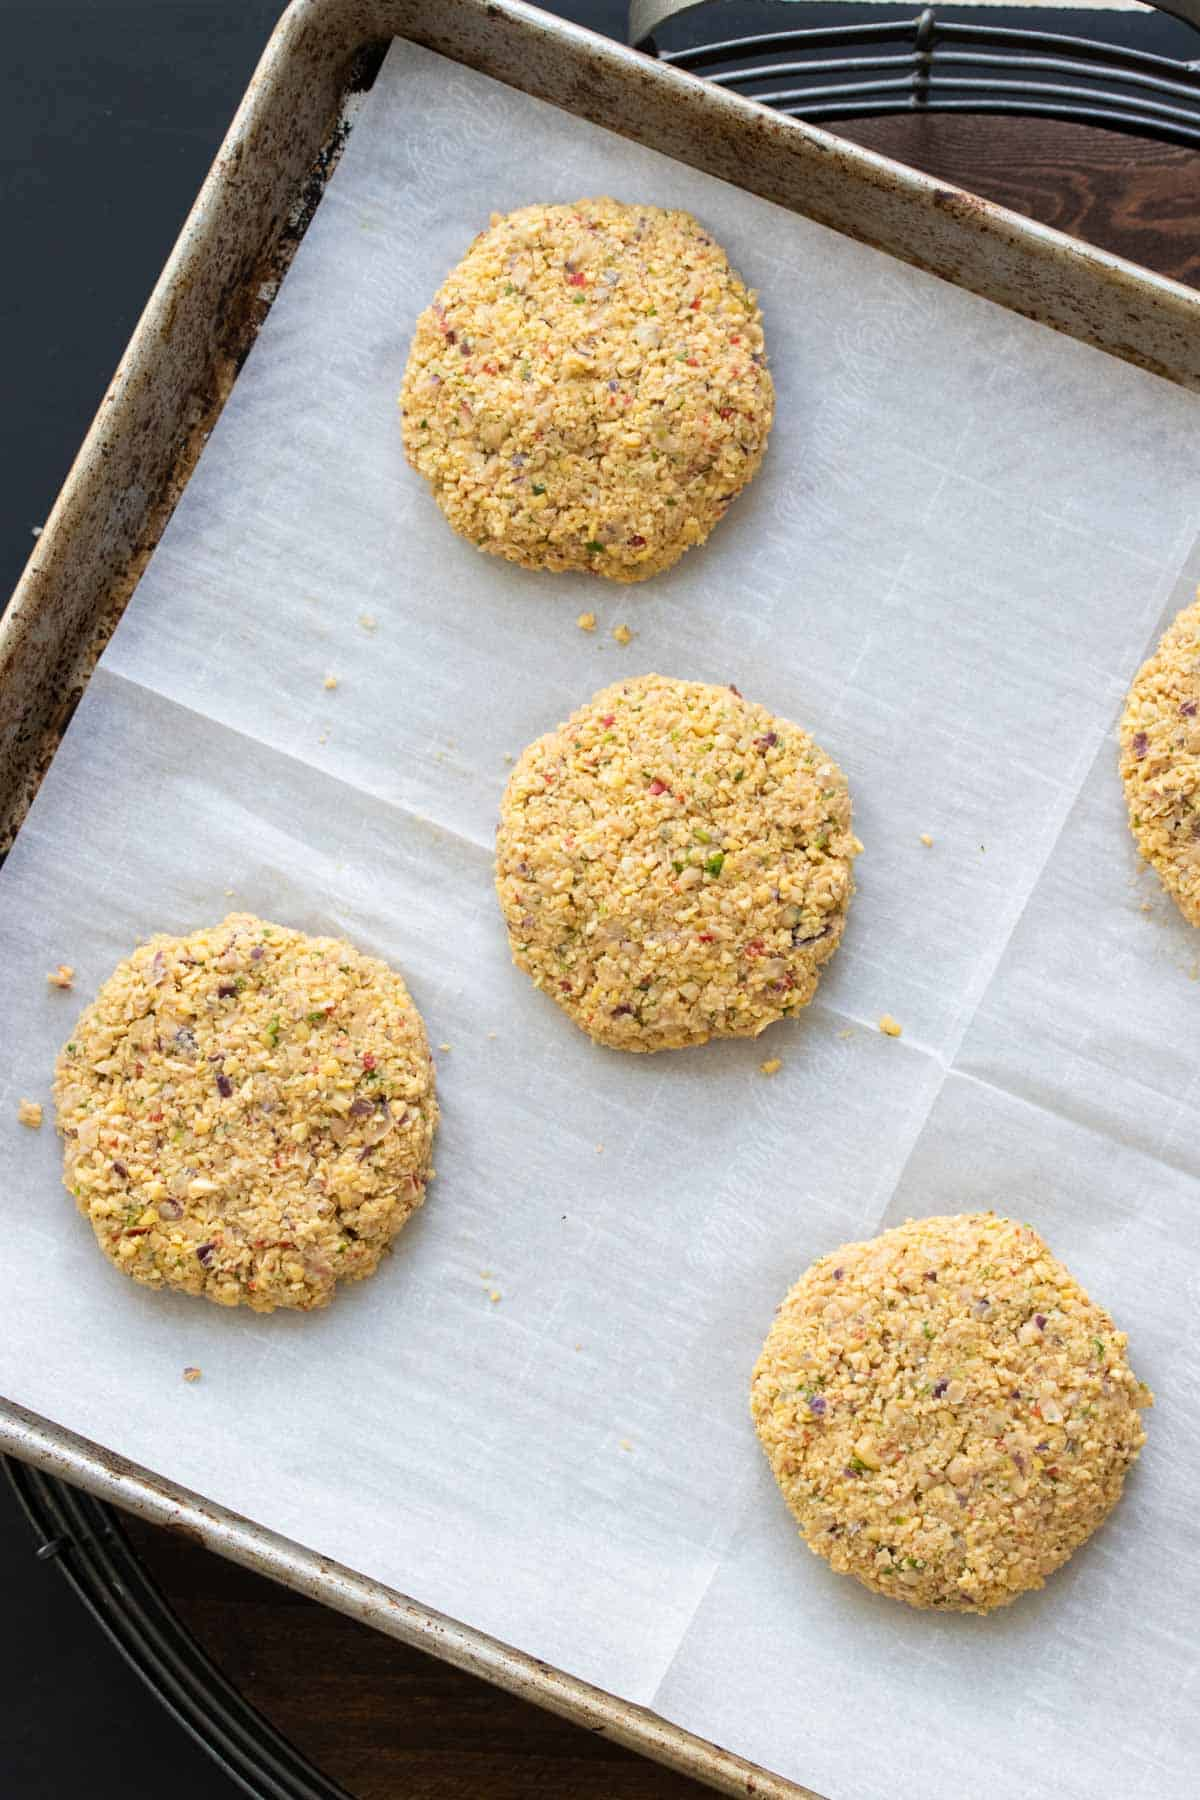 Uncooked falafel burger patties on a parchment lined baking sheet